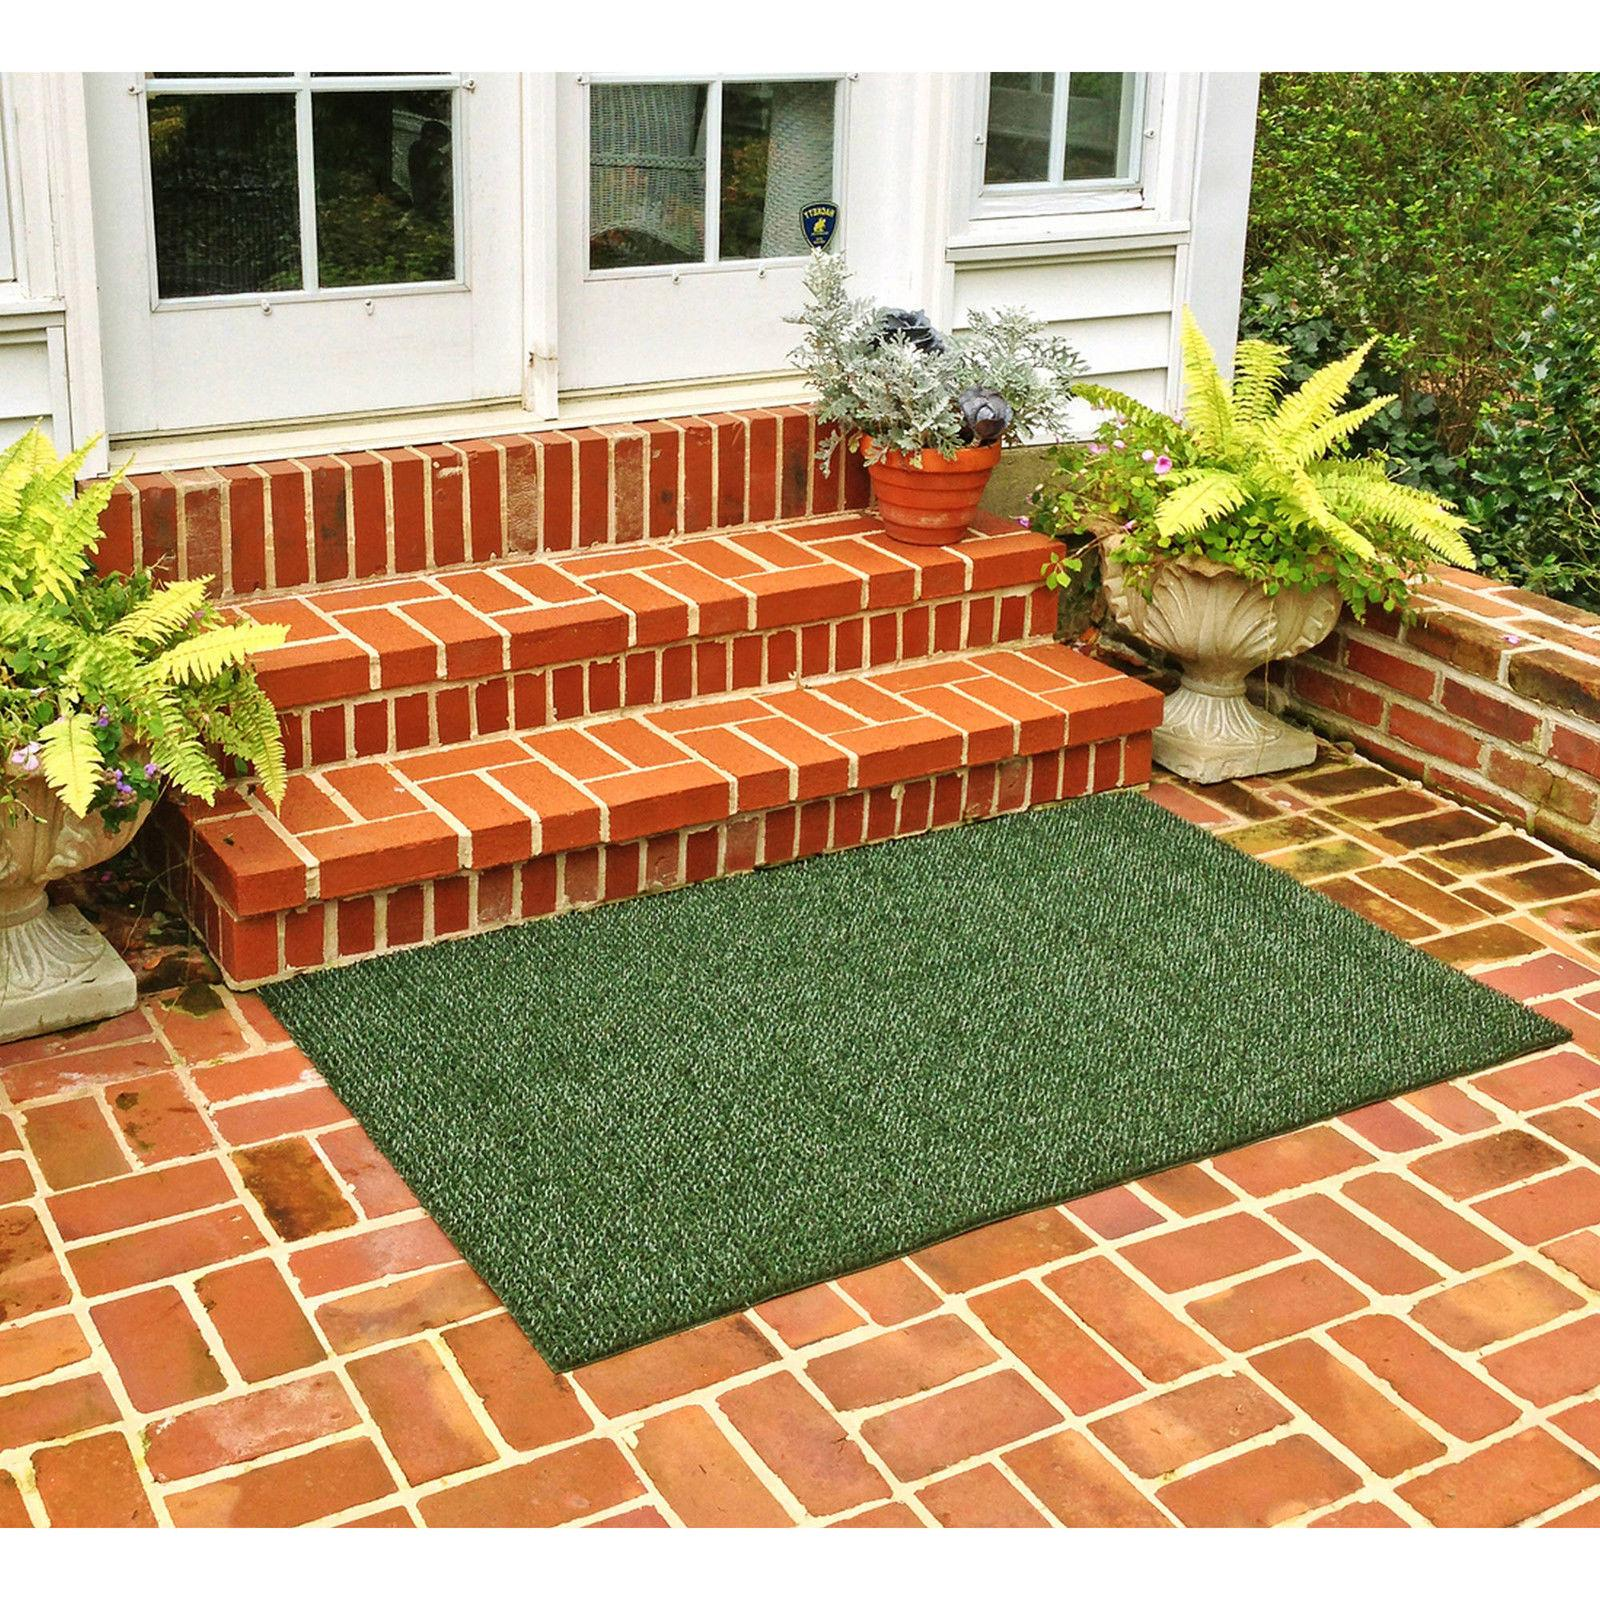 scraper entrance door mat home doormat non